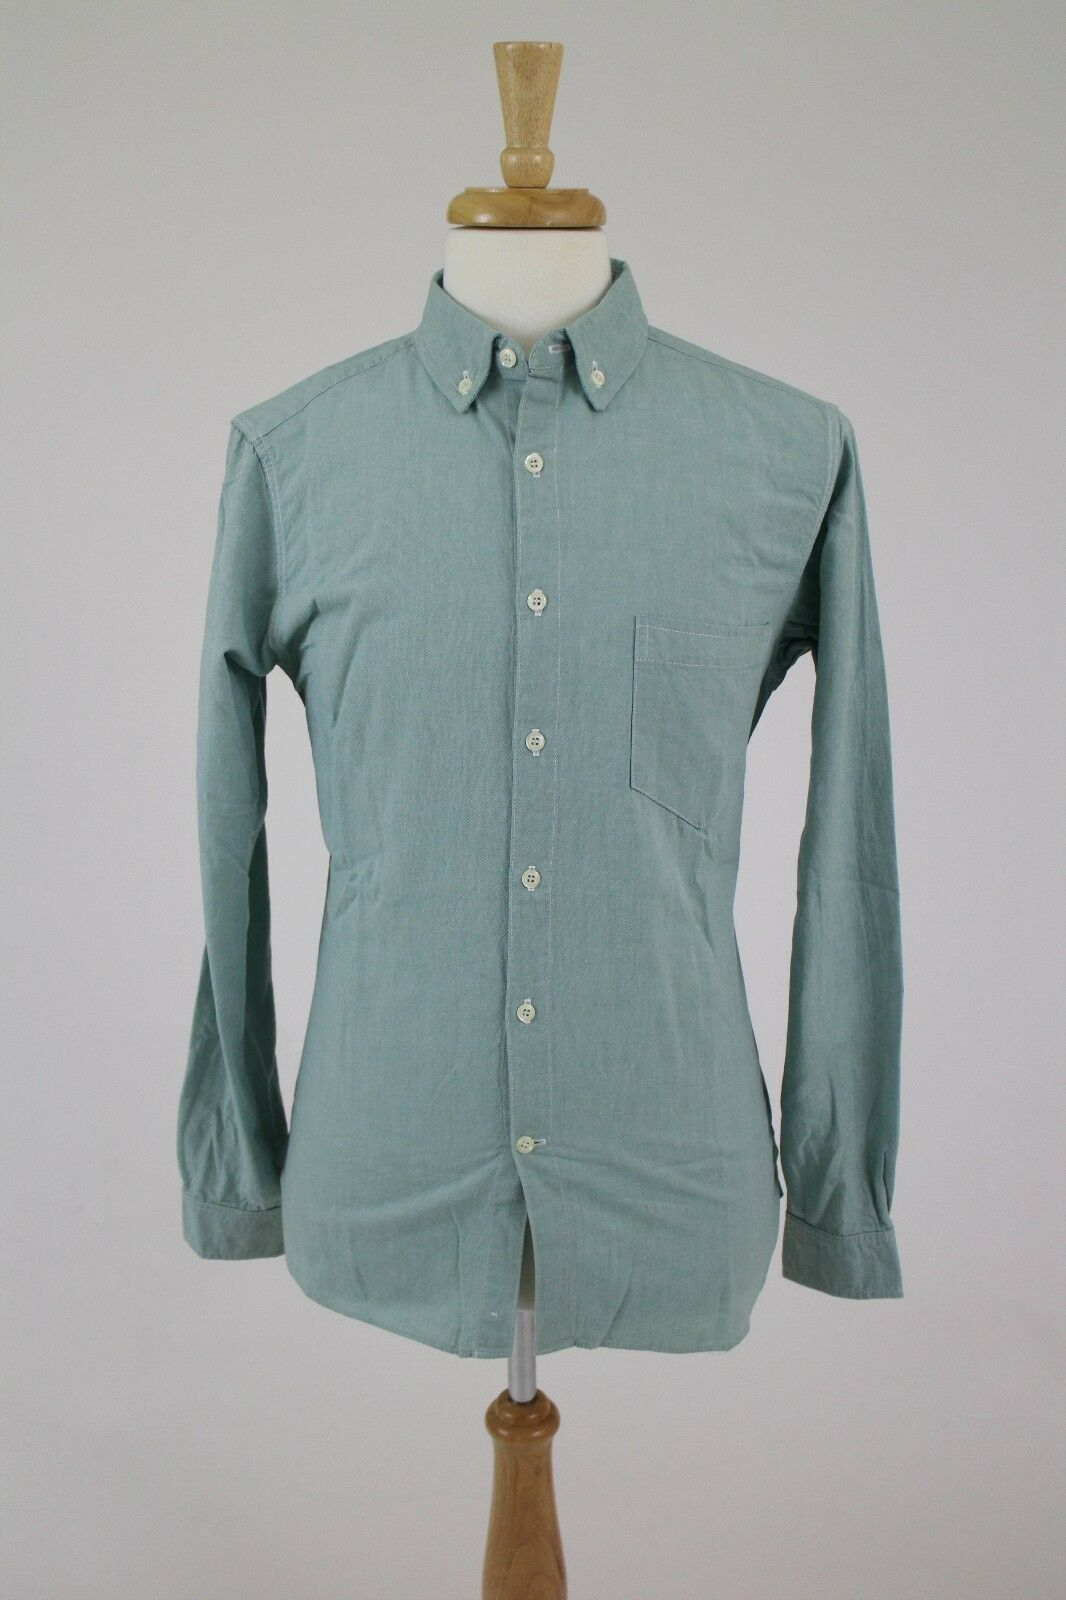 New Freemans Sporting Club Green Oxford Long Sleeve Casual Cotton Shirt